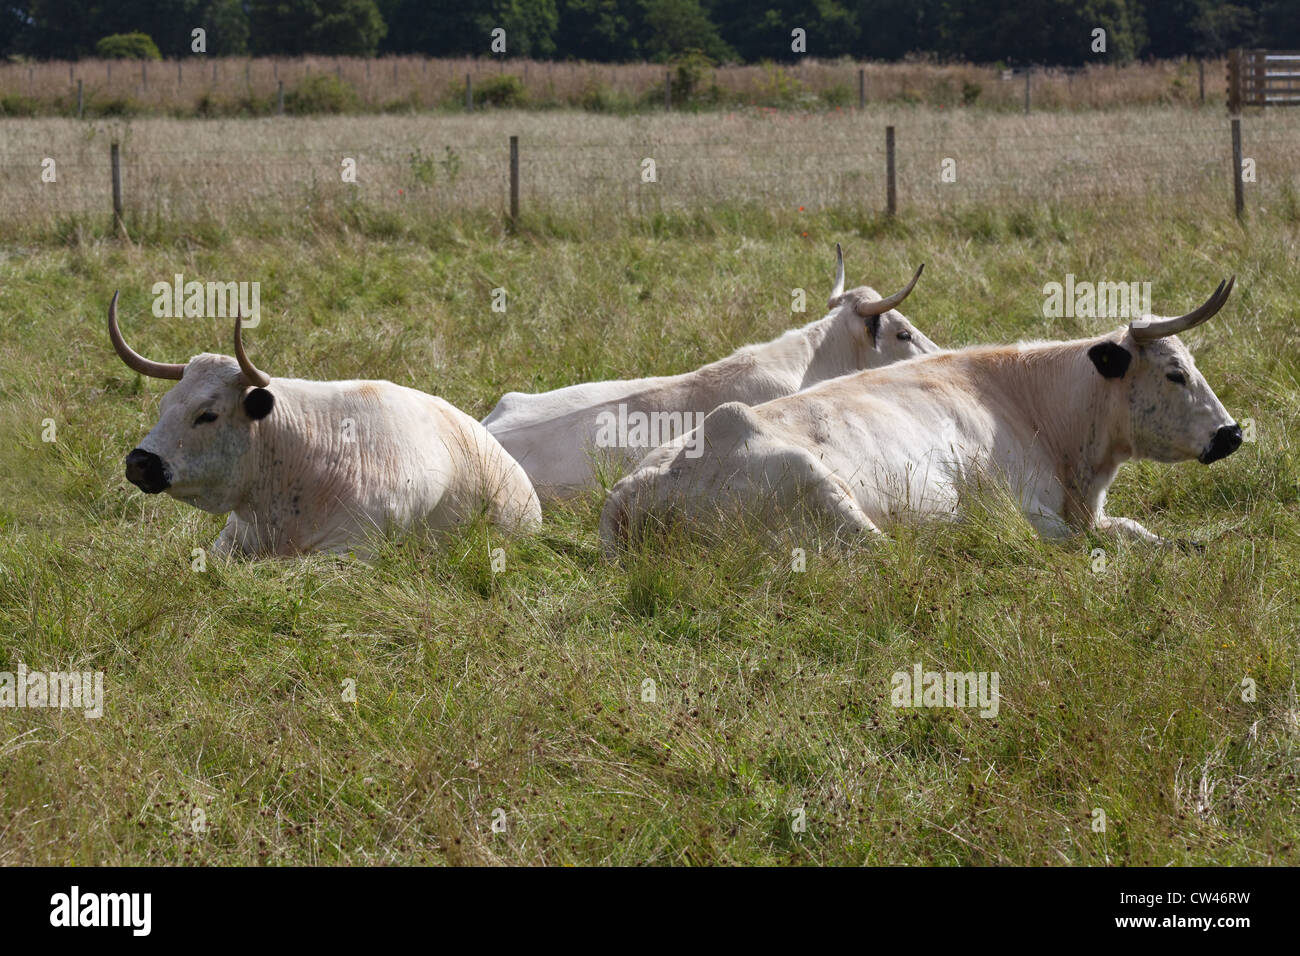 White Park Cattle (Bos taurus). Cows at rest, 'chewing the cud'. - Stock Image